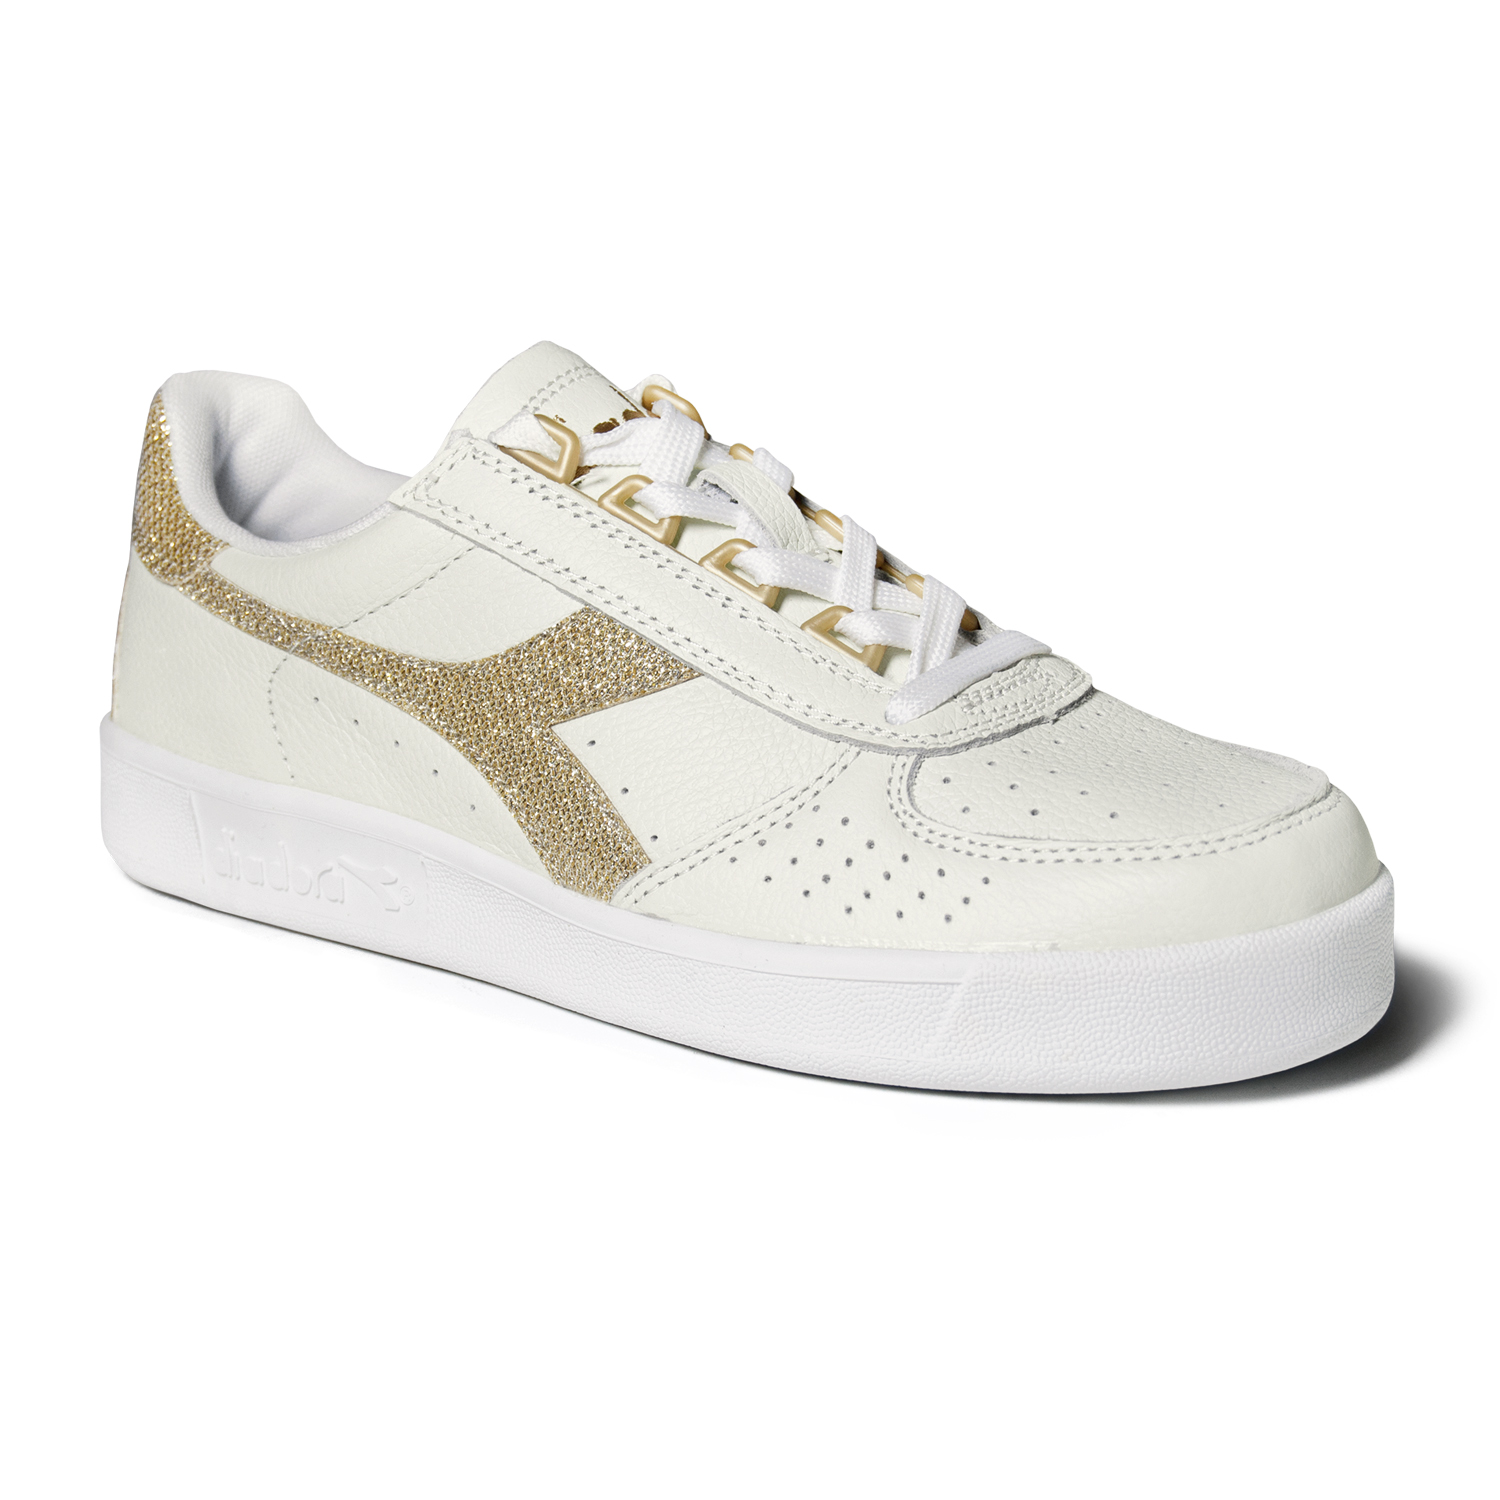 Off71 Scarpe 2018 Donna Diadora Acquista Sconti Qfwnuiua Cancer